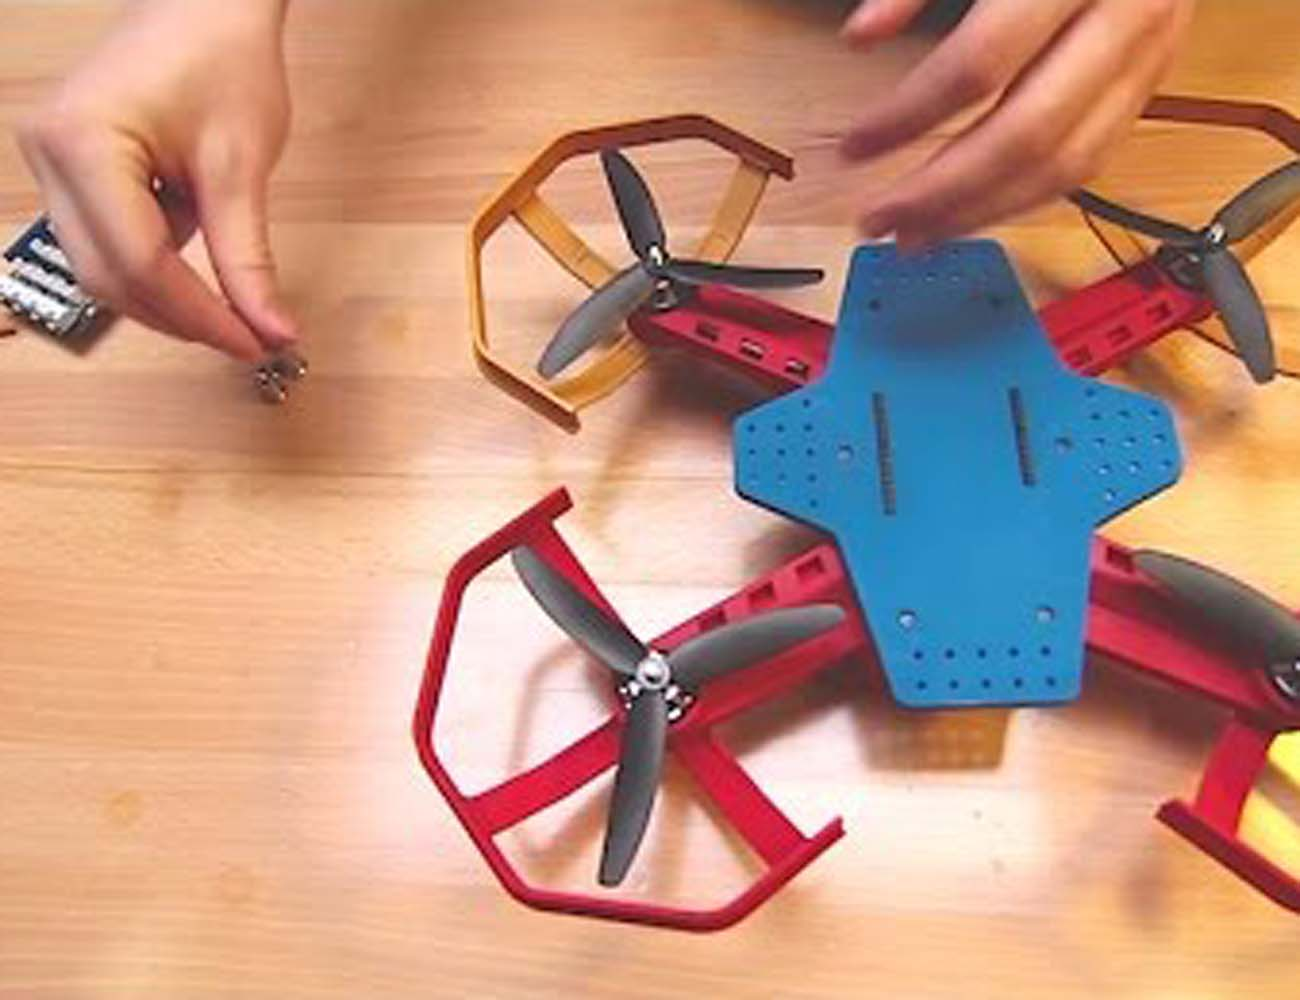 Eedu – An Easy Drone Kit That Teaches You Coding And Robotics